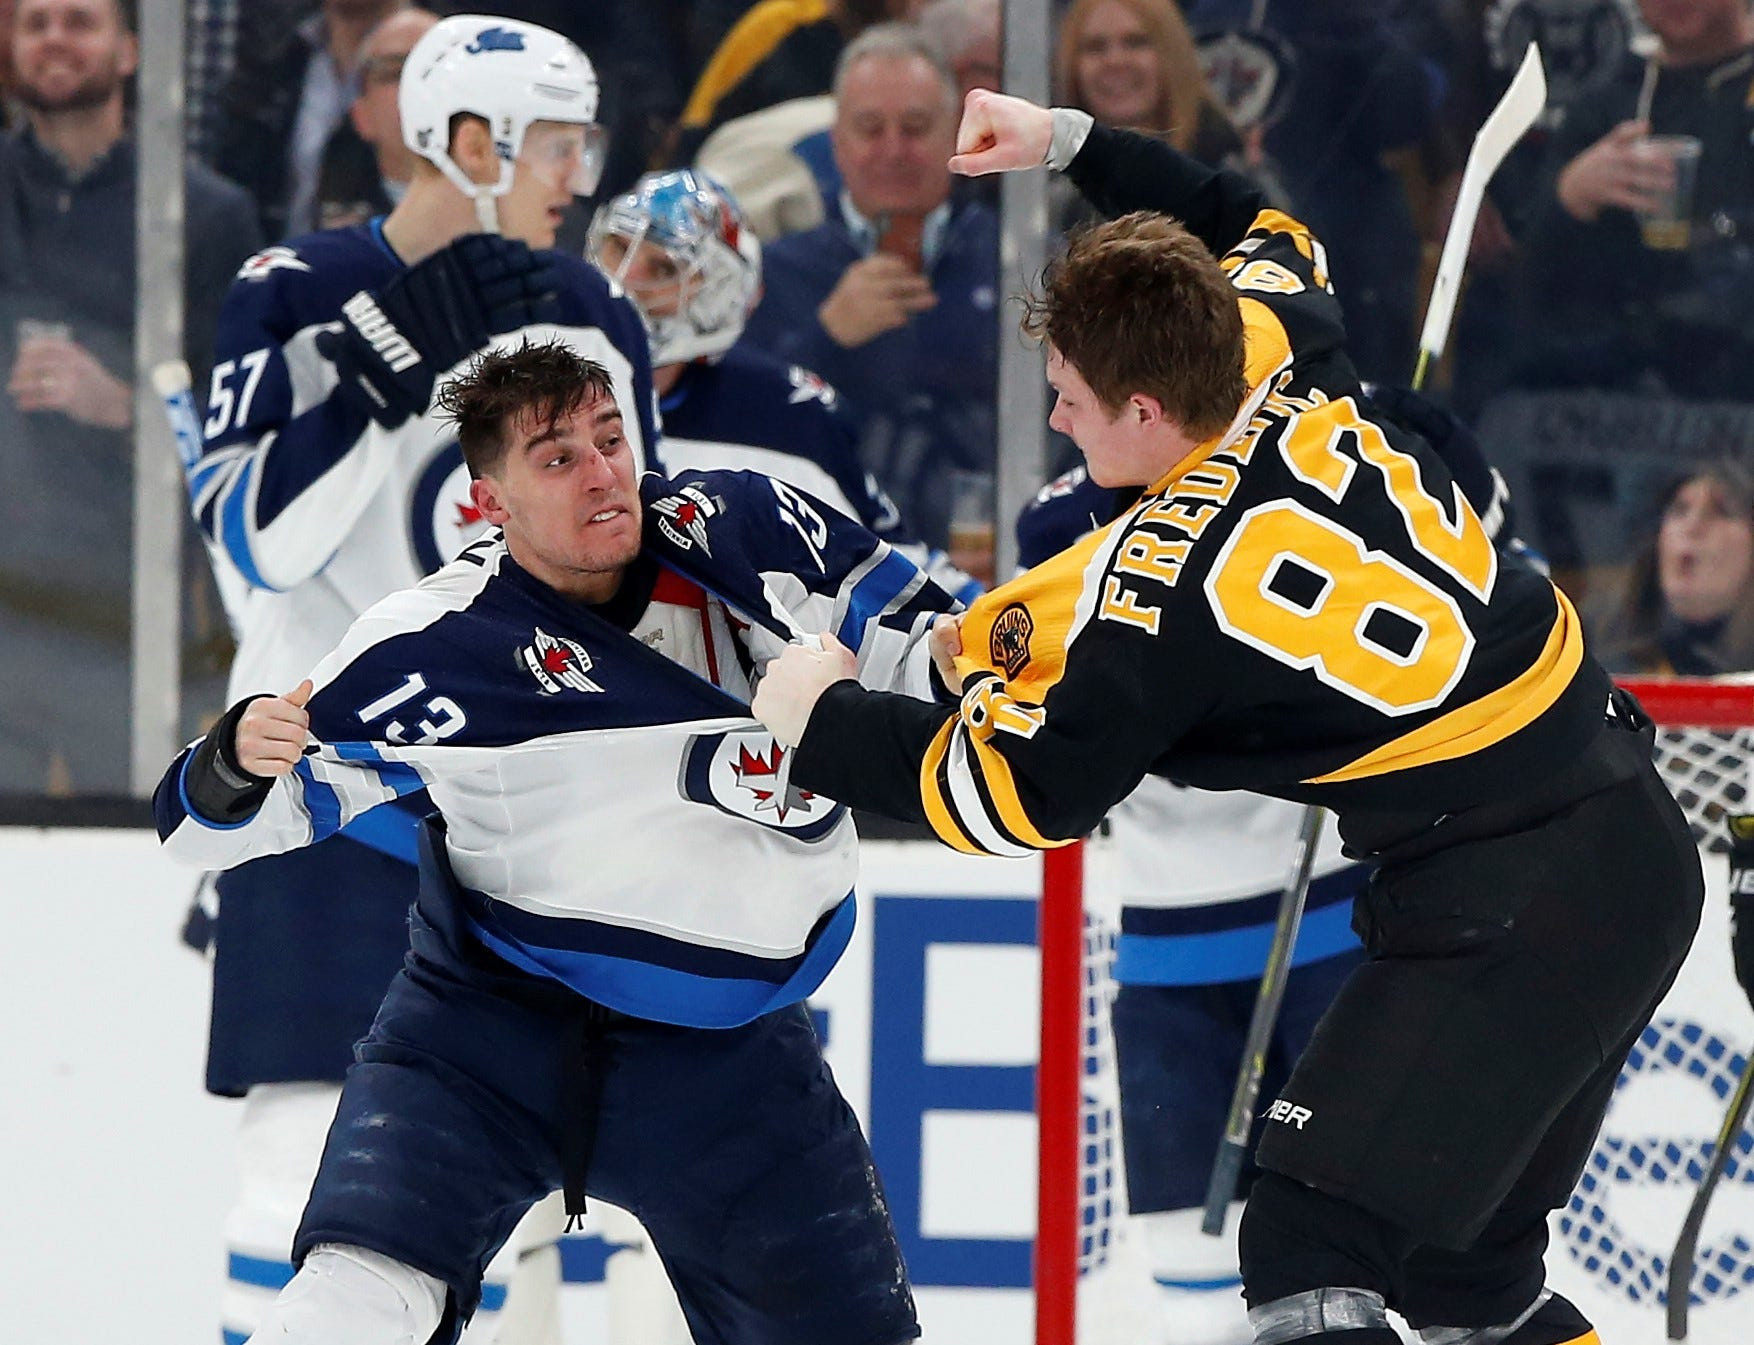 Bruins rookie Trent Frederic handily wins fight in NHL debut, and his parents are thrilled